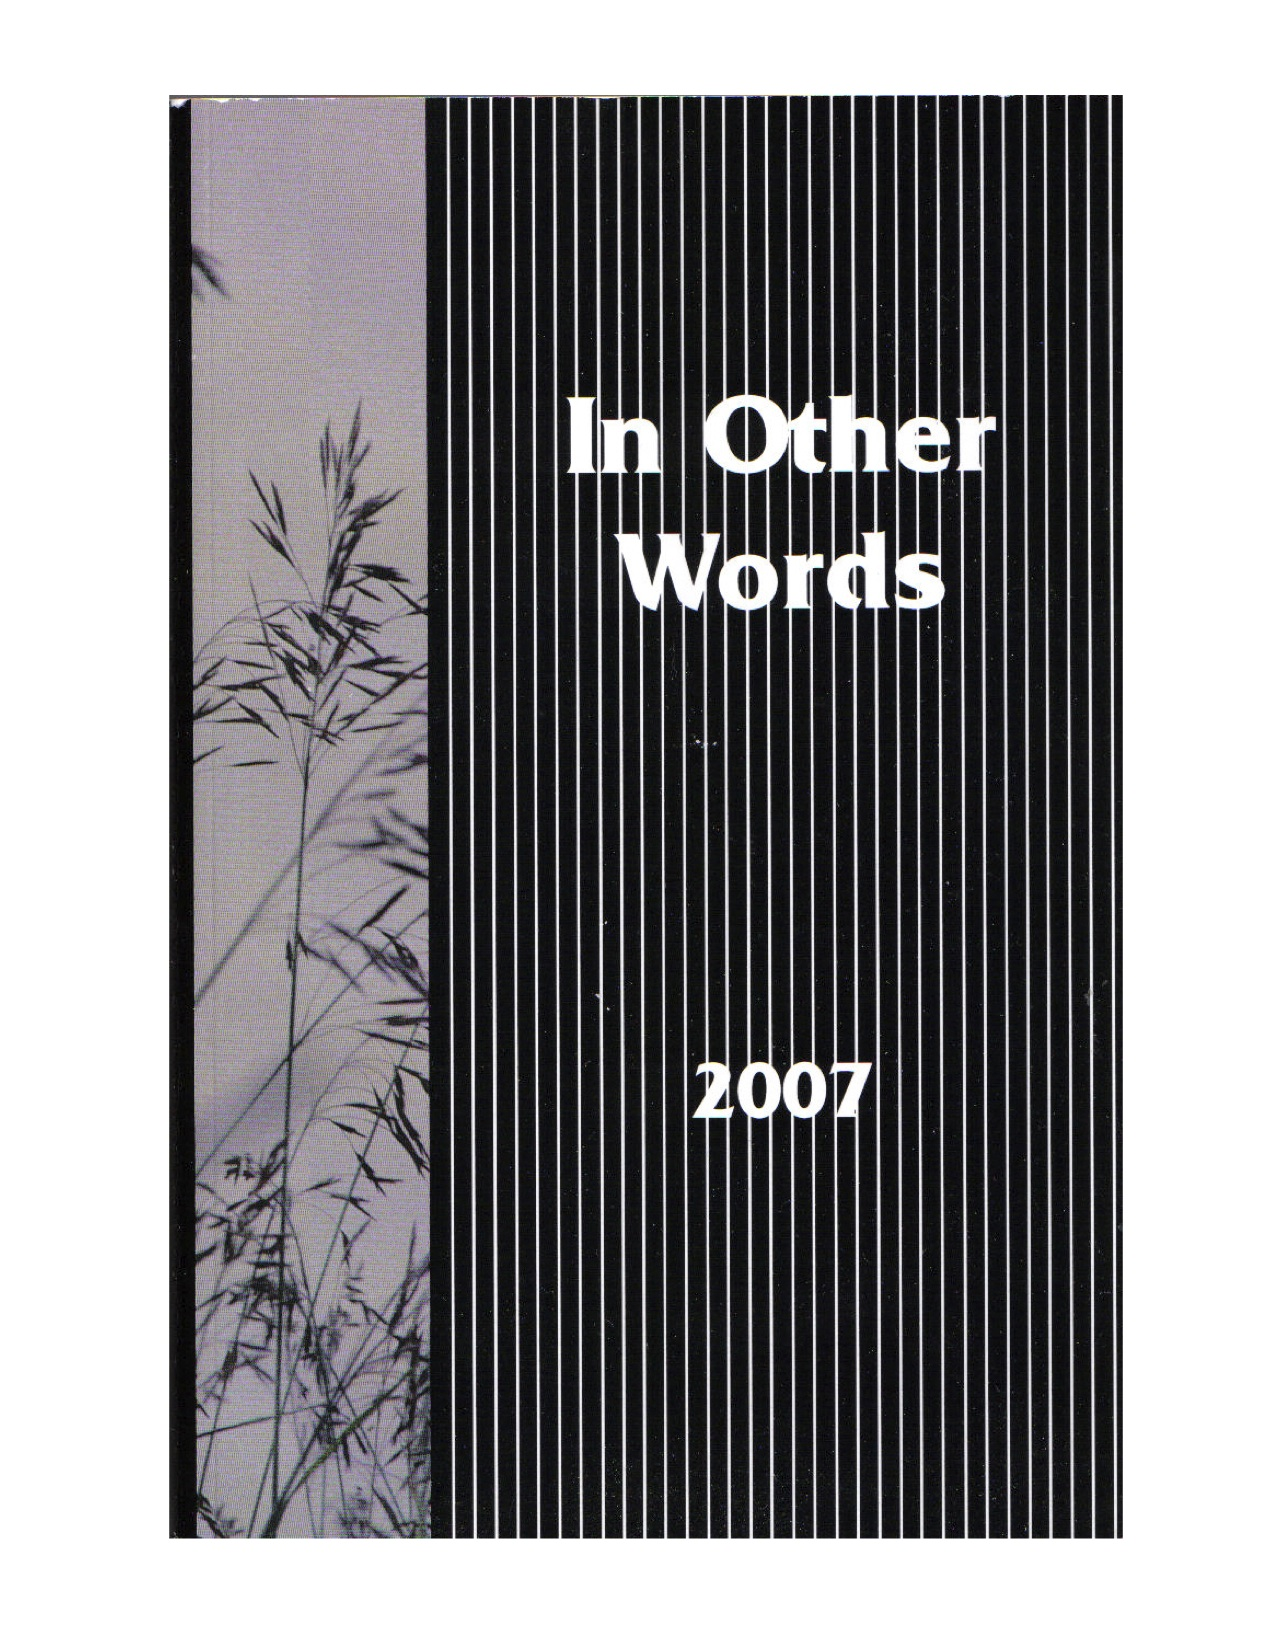 "MY POEM ""DOROTHY AND PAUL"" WAS FEATURED IN THE BOOK IN OTHER WORDS IN 2007"